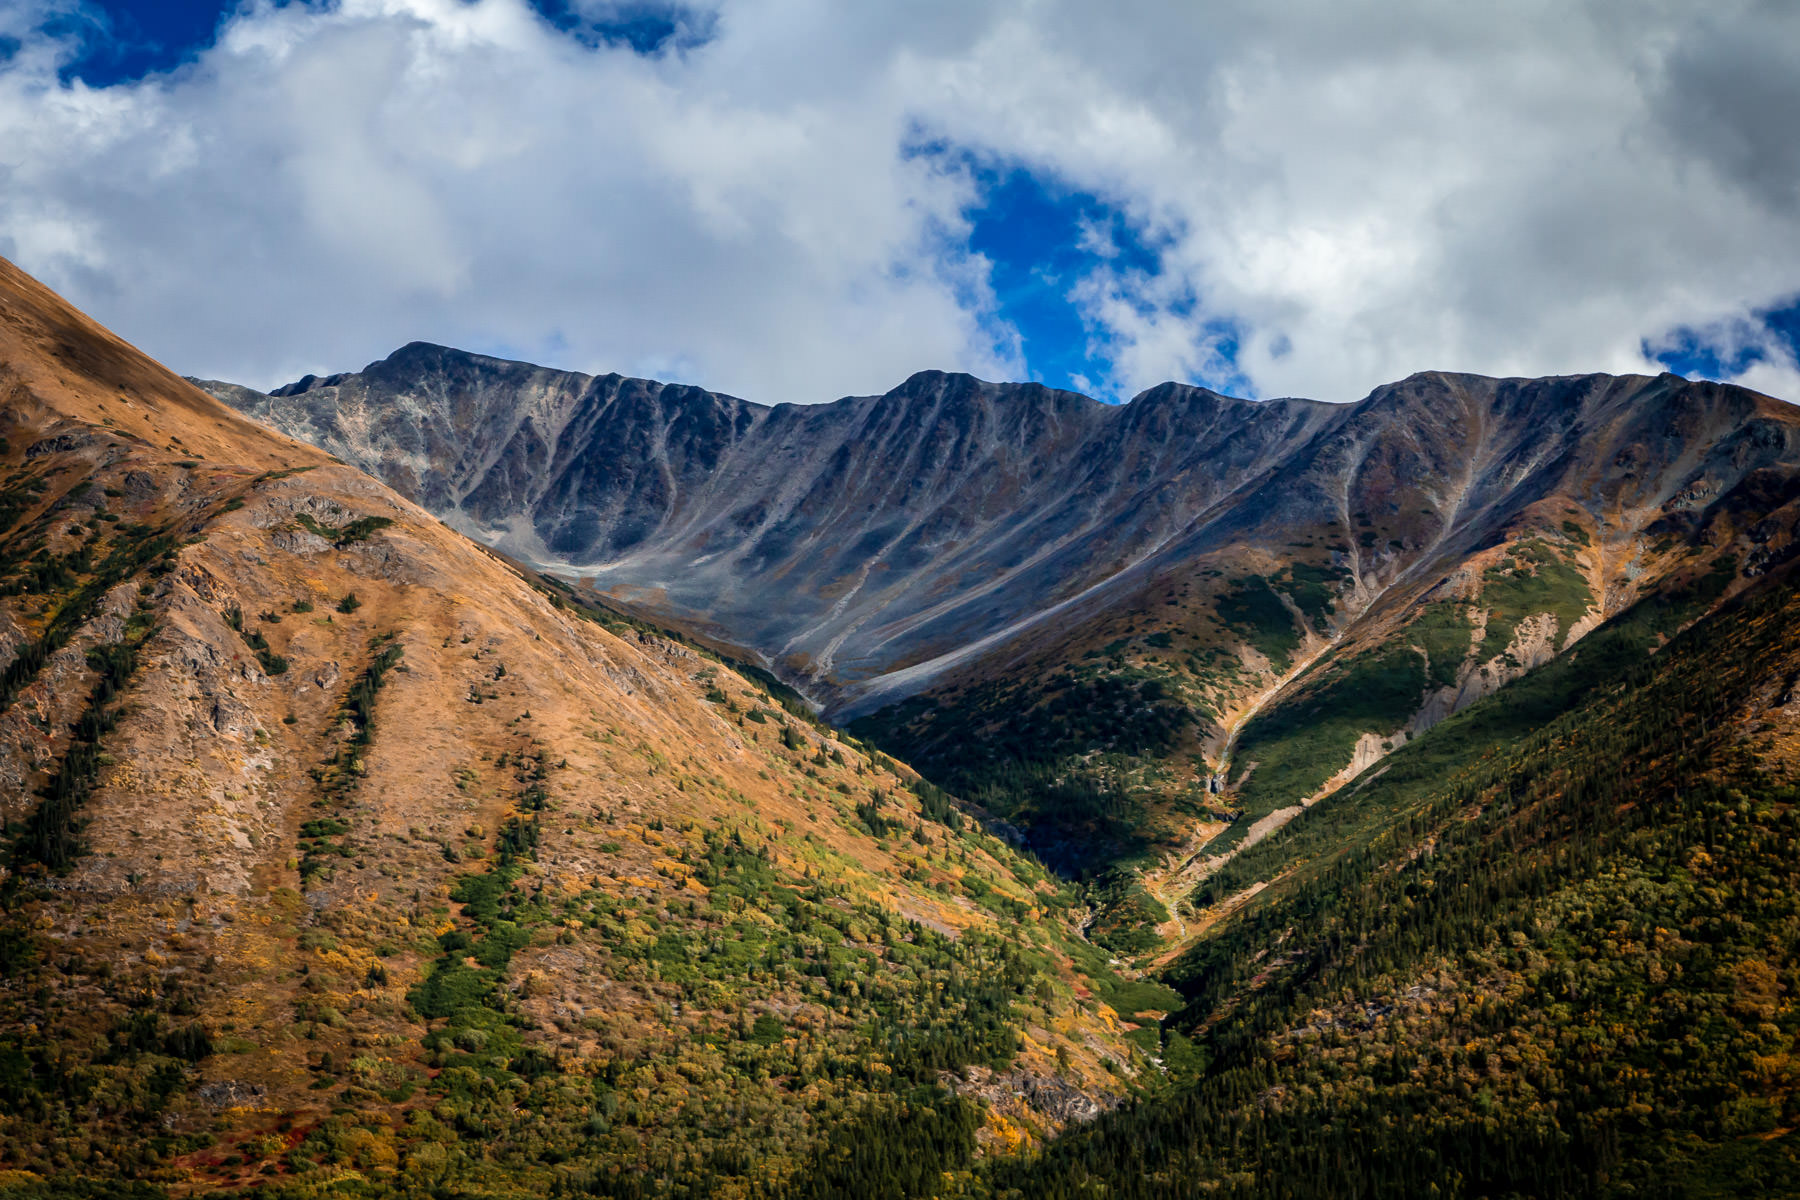 The mountainous landscape of British Columbia's Stikine Region.